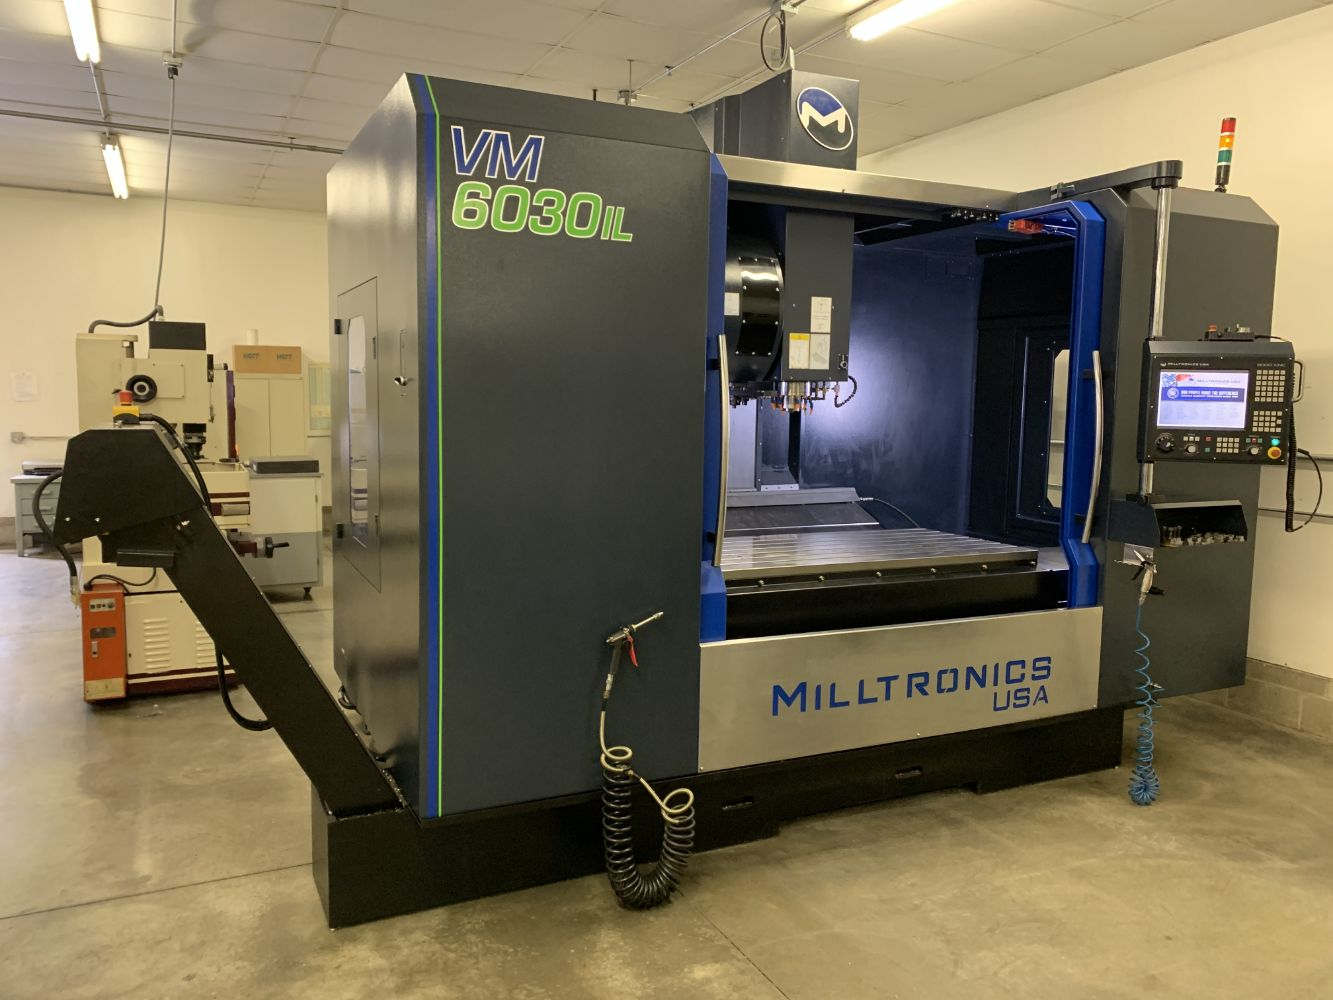 Northmont Tool, Inc. - Owner Retiring after 50 years - Milltronics Precision CNC Shop